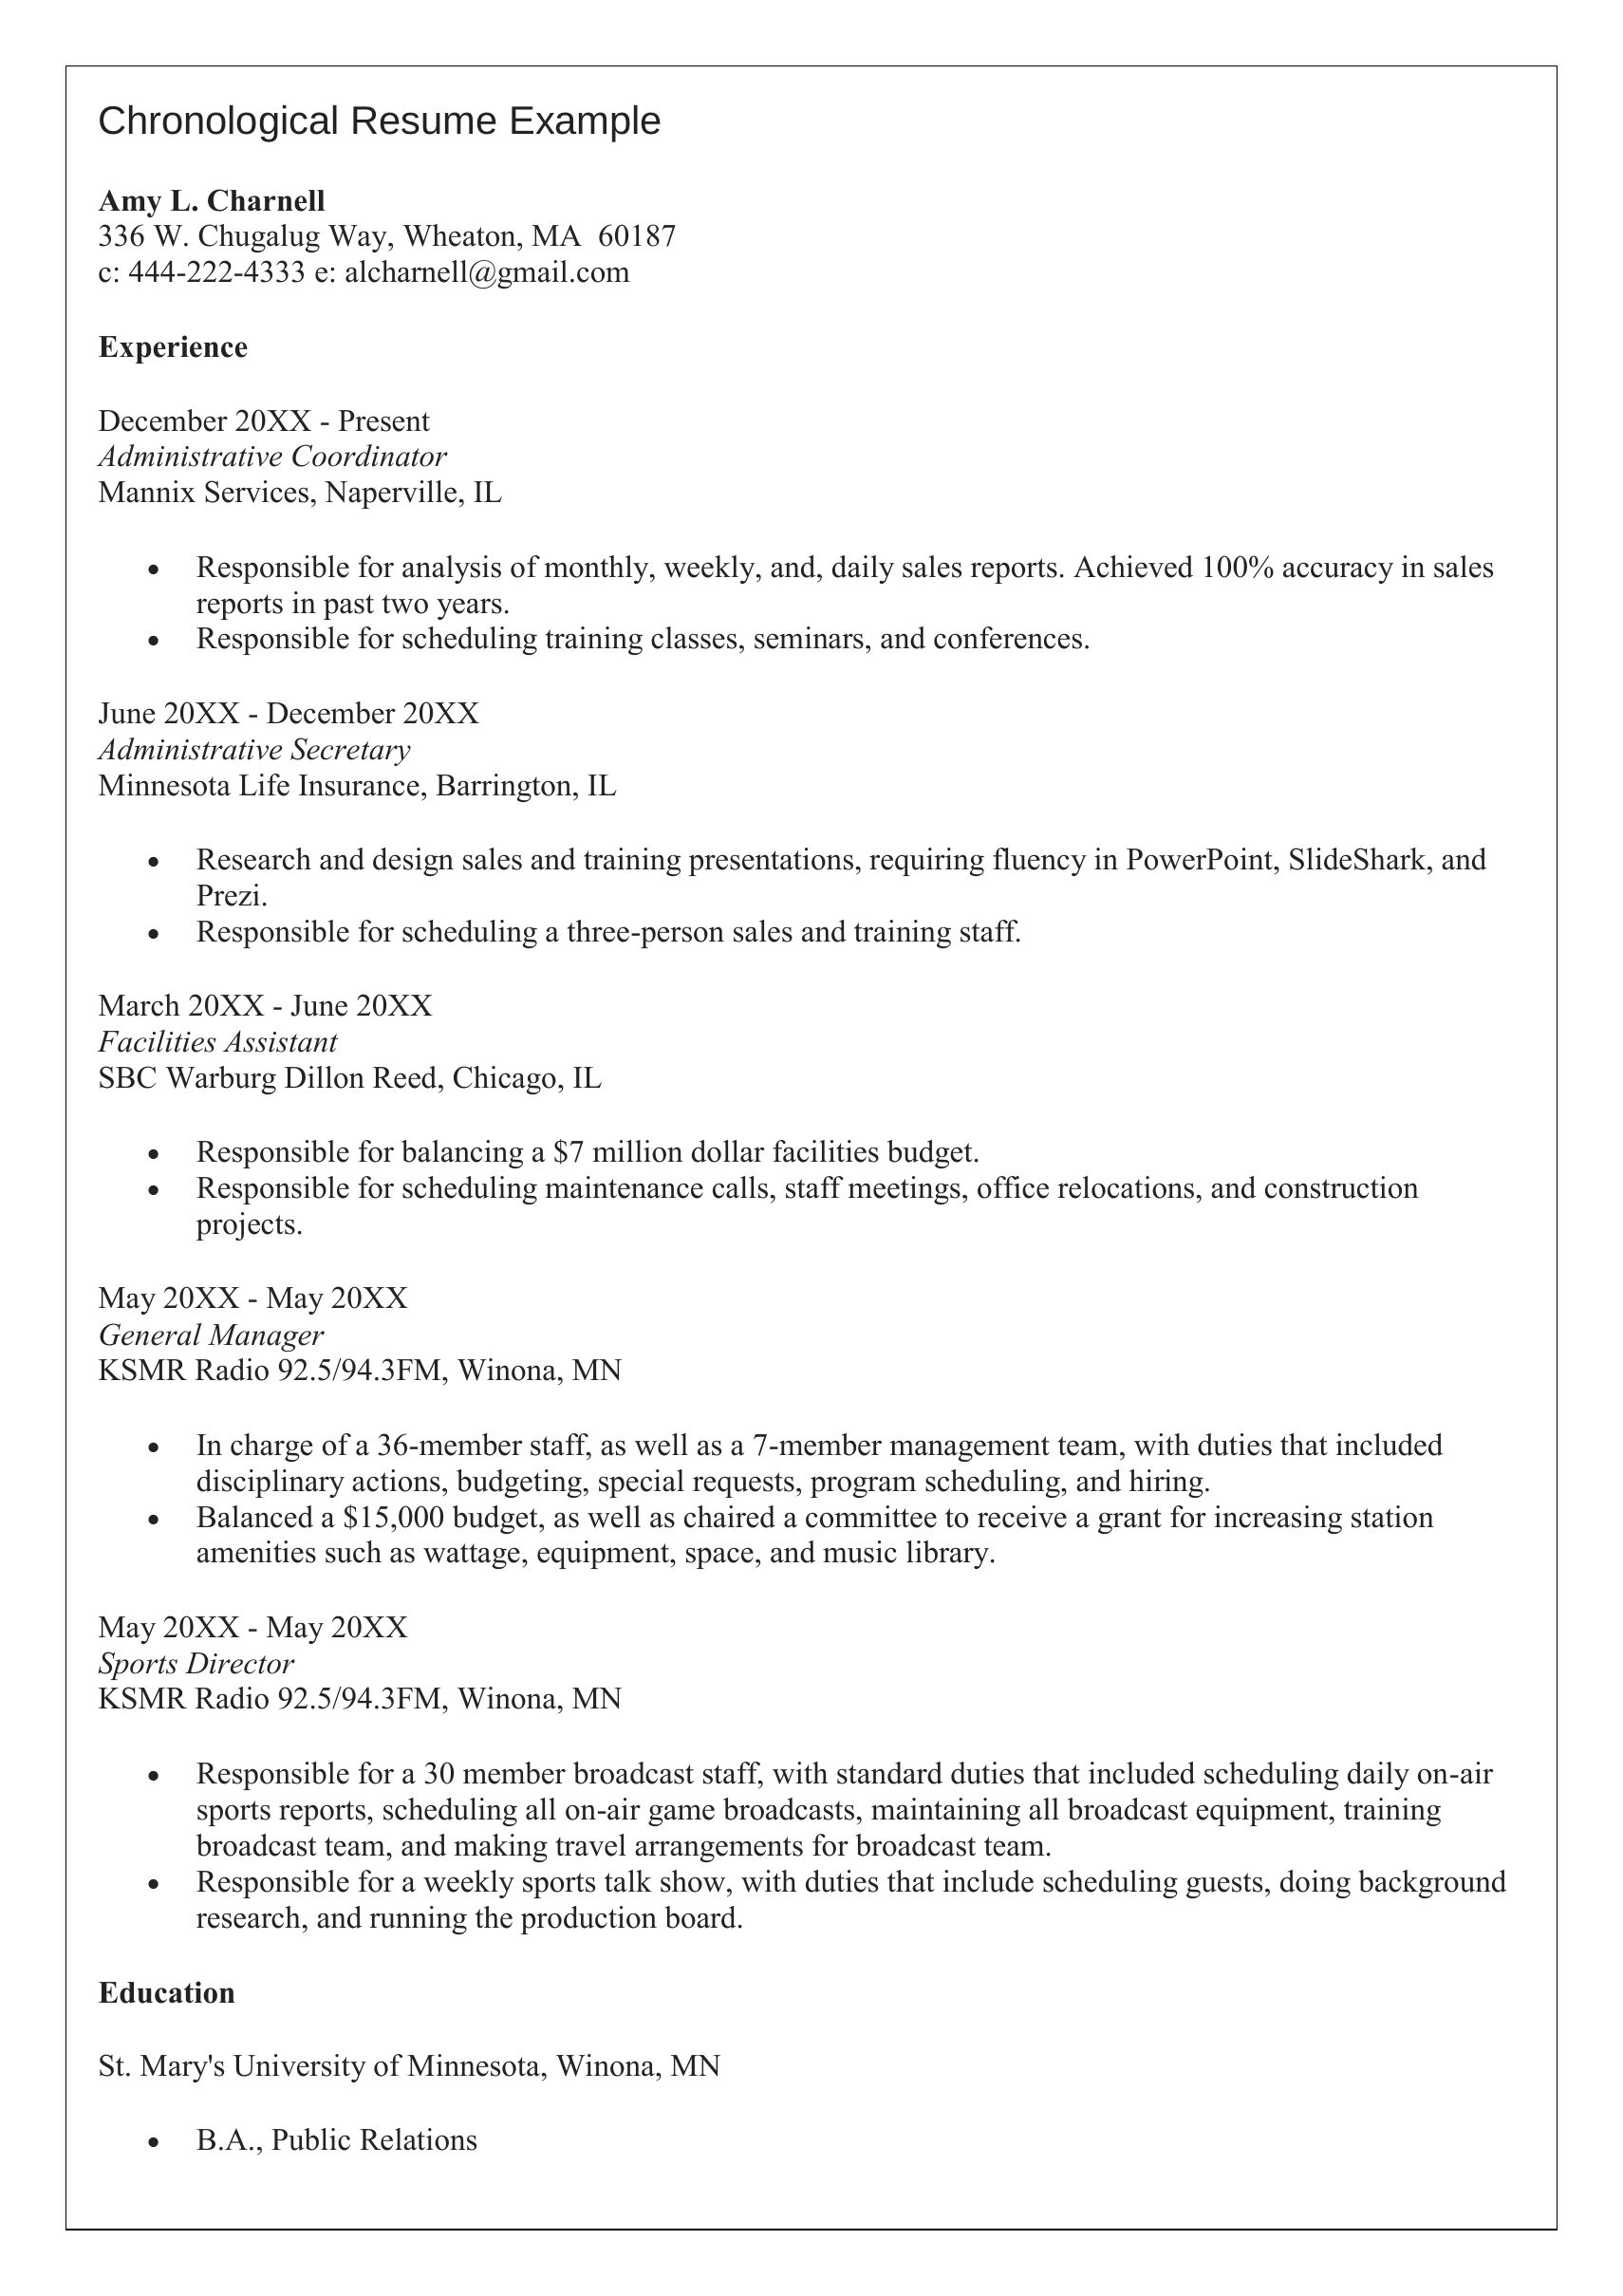 Chronological Resume Format Example Template Free Samples Examples